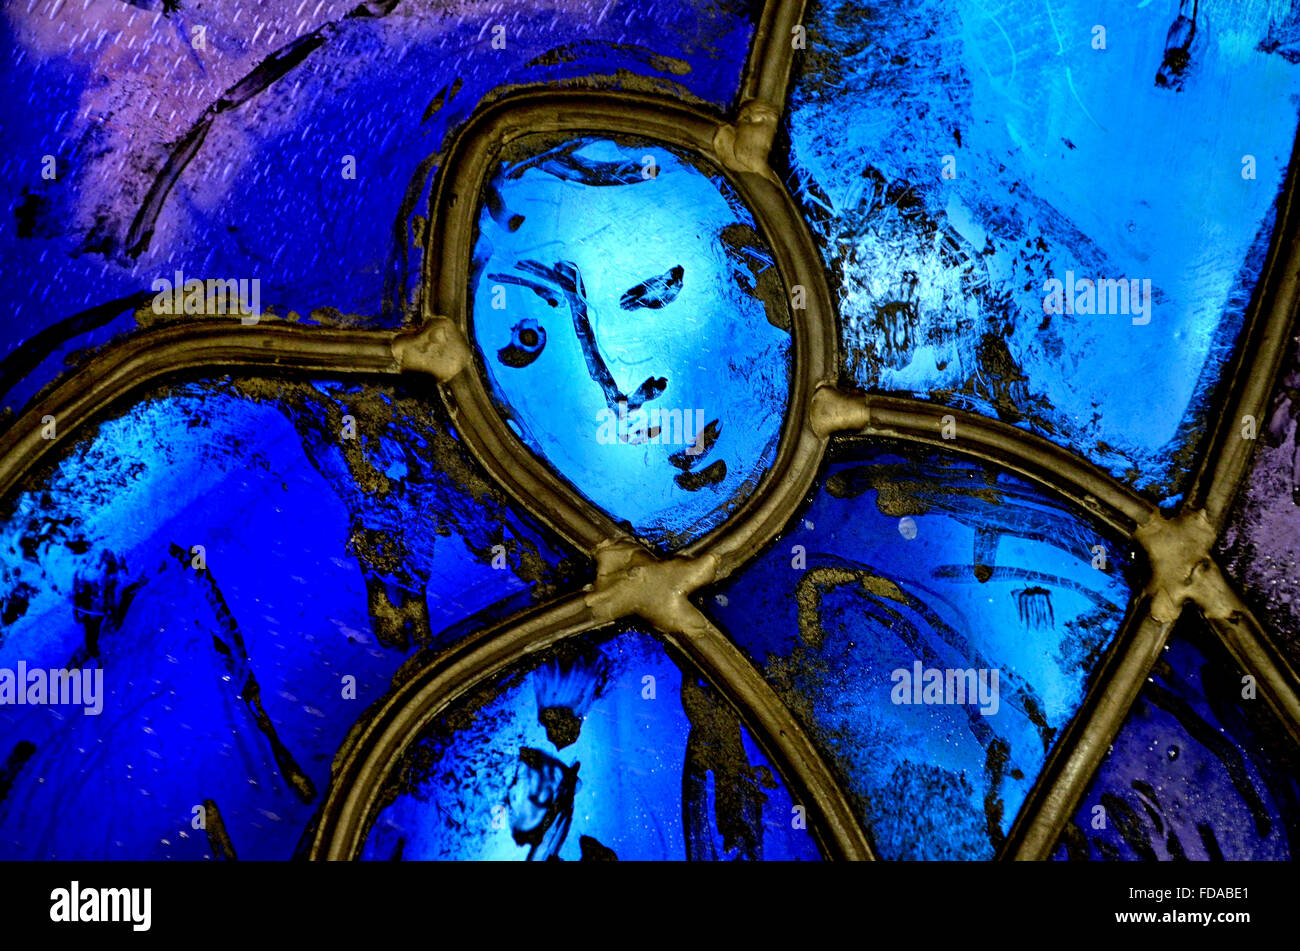 Tudeley, Tonbridge, Kent, UK. All Saints Church. Stained Glass Window by Marc Chagall - angel. Detail showing lead - Stock Image